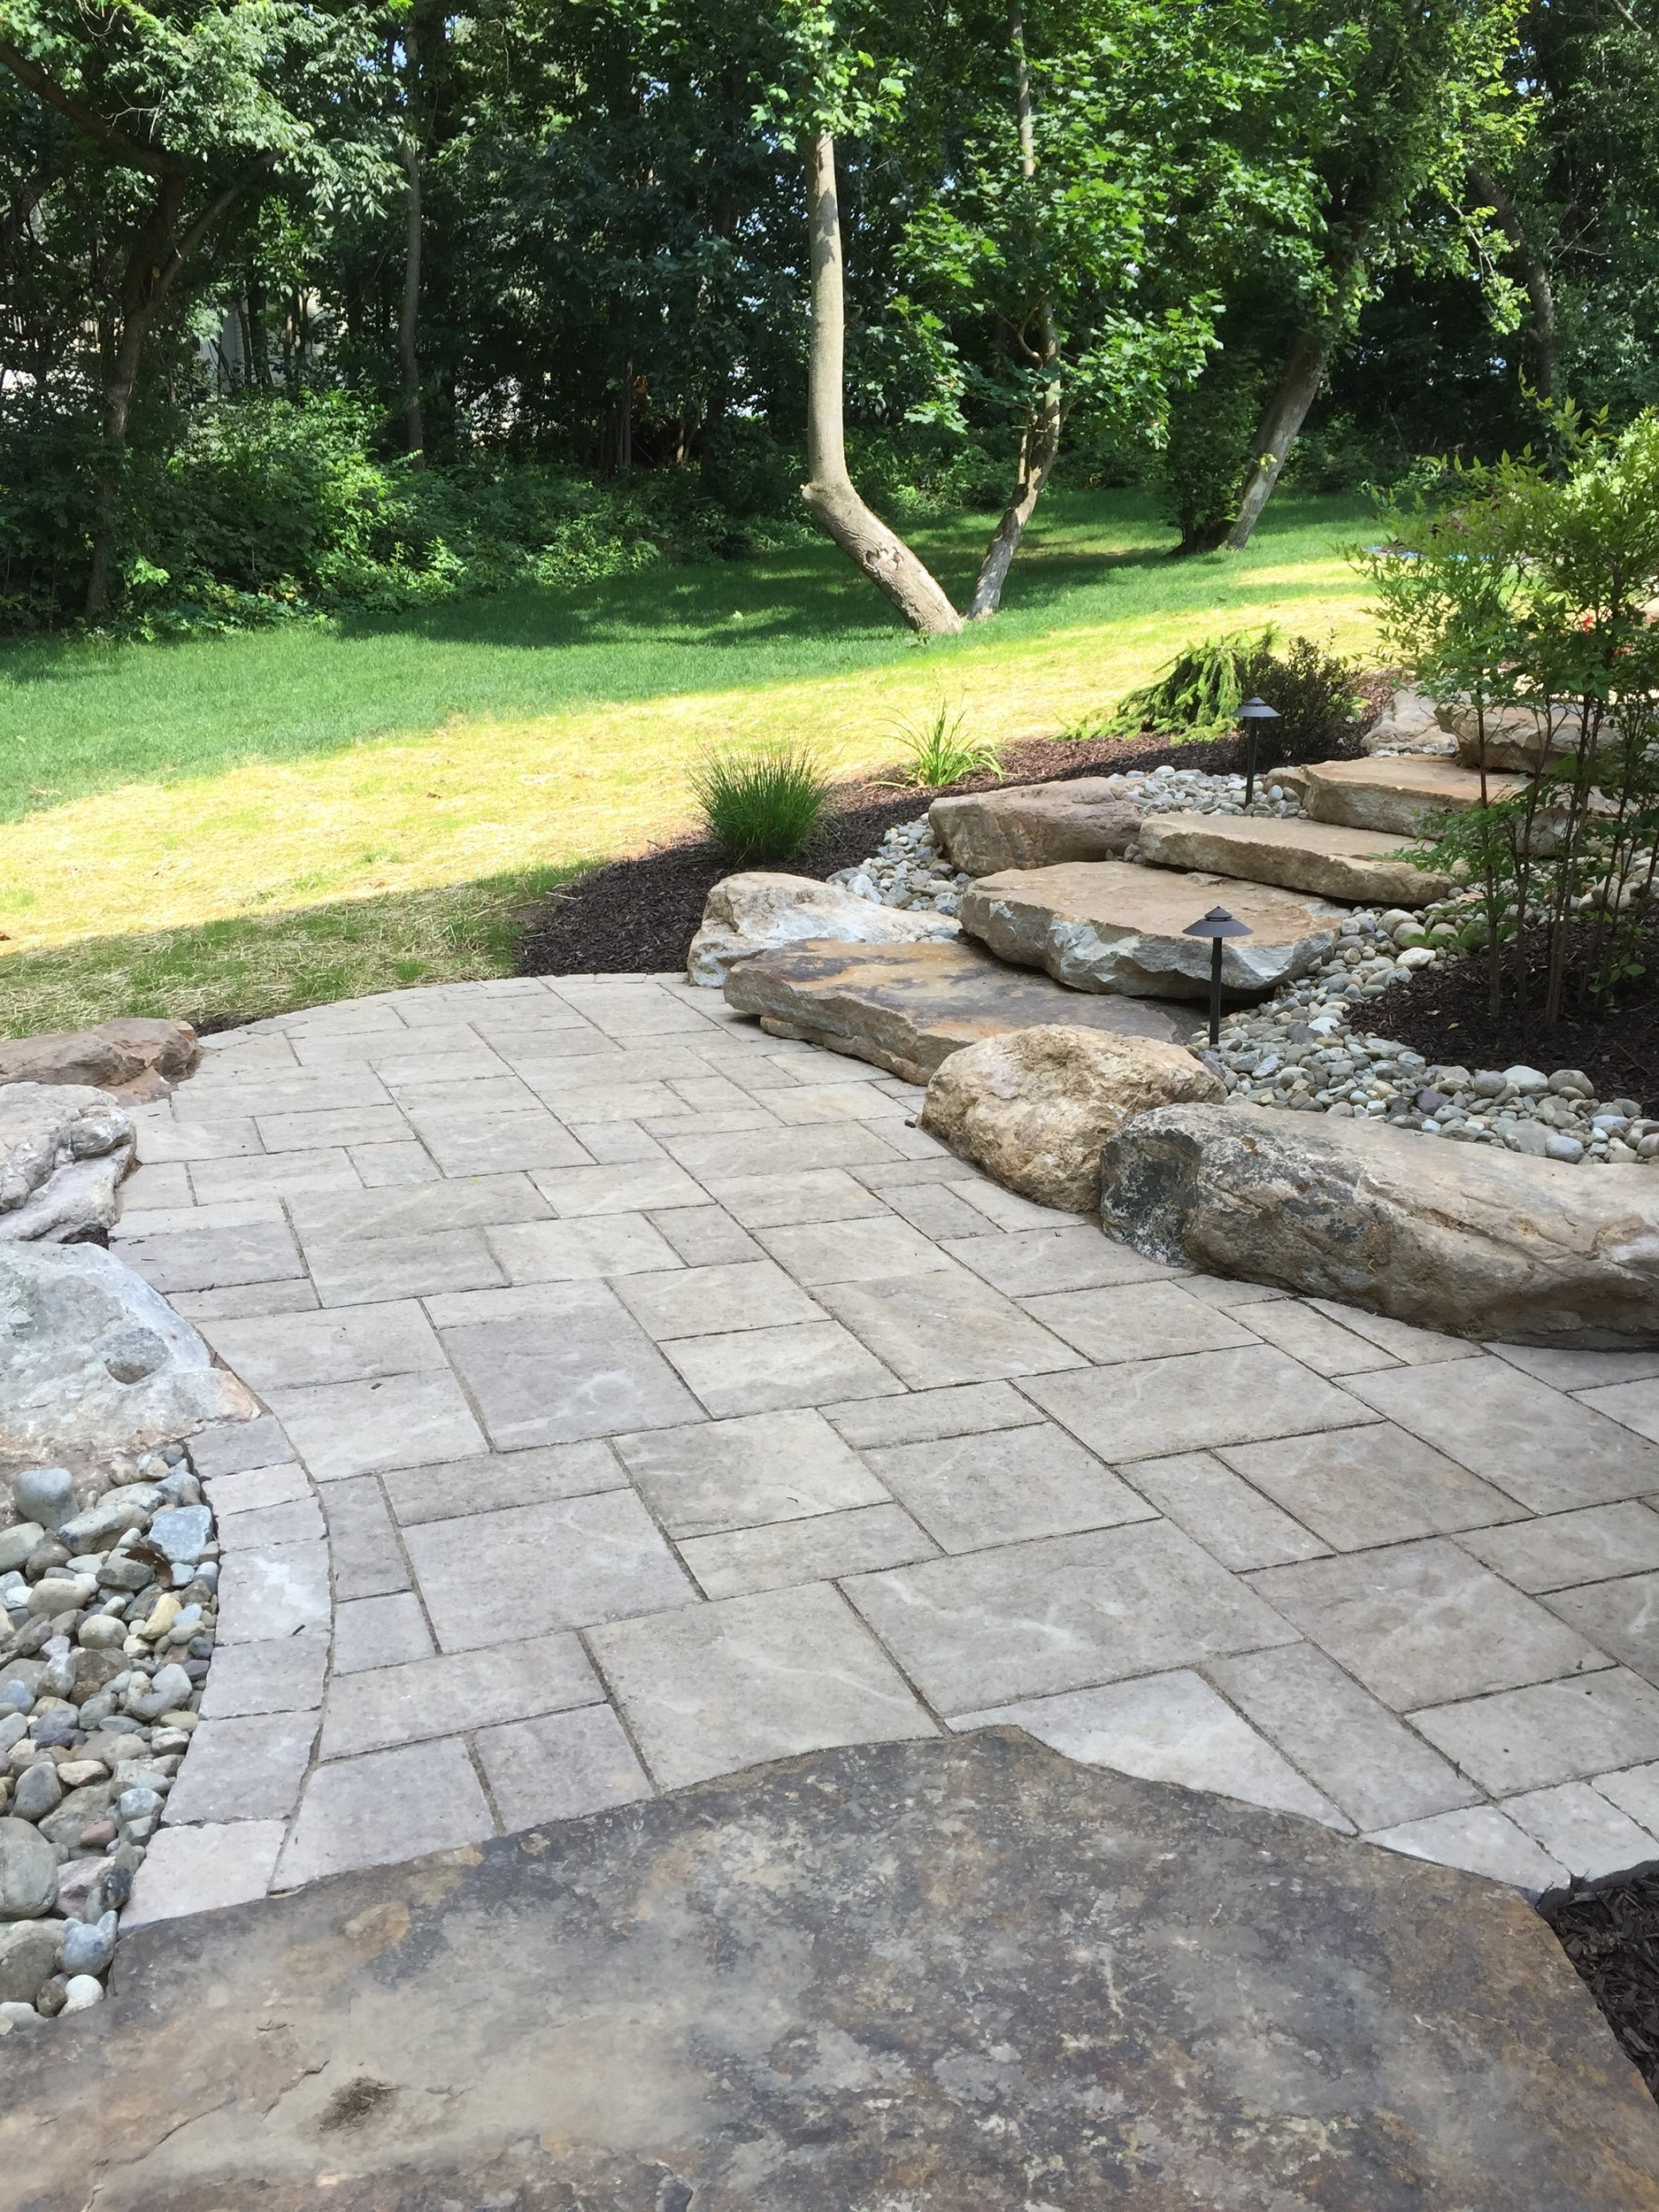 Top backyard landscape design with an outdoor kitchen by landscape contractor in Pottsville, Pennsylvania